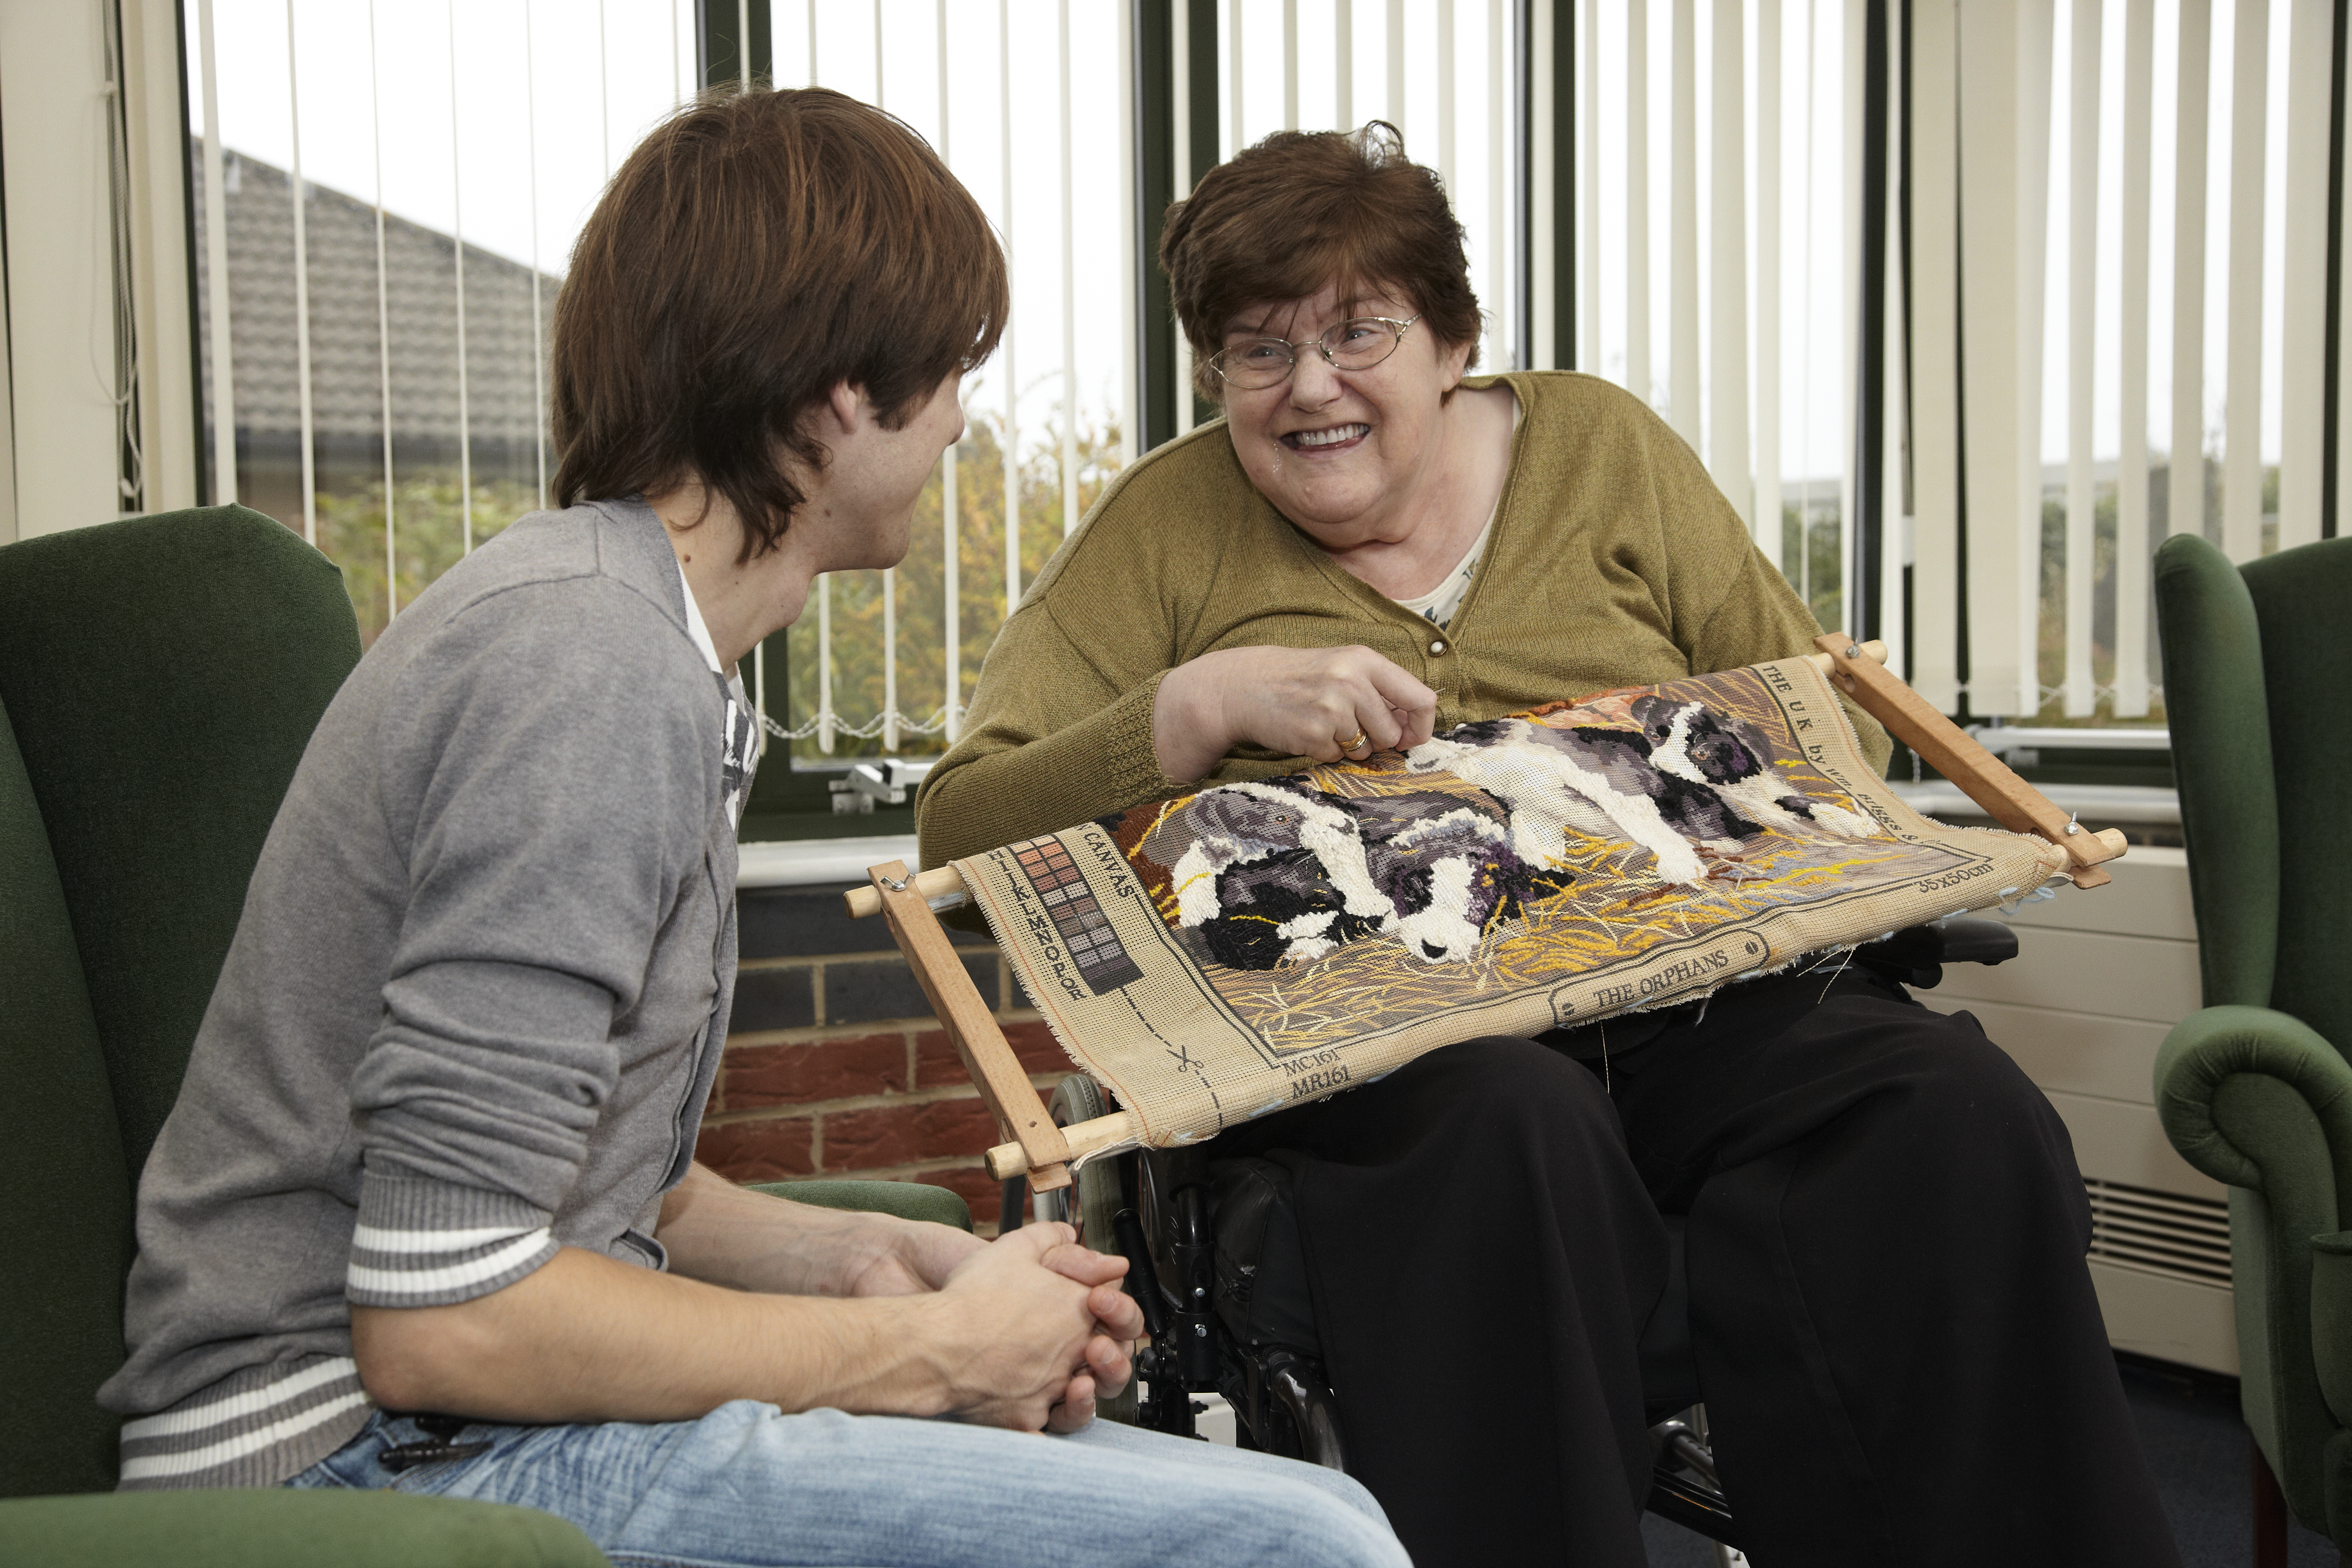 service user weaving whilst talking to a support worker at Jane Percy House